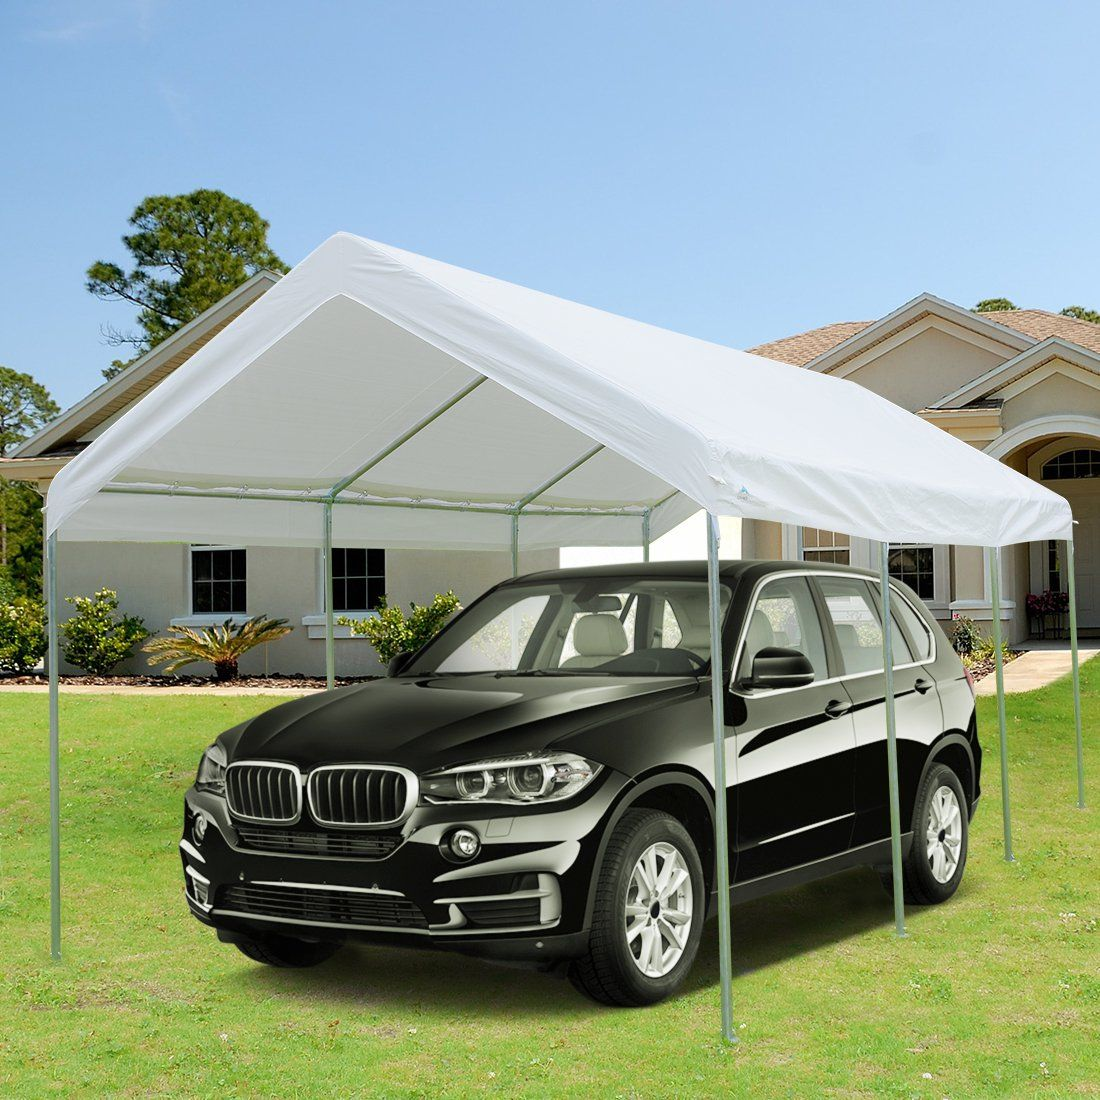 10' x 20' Heavy Duty Carport Car Canopy Garage Shelter